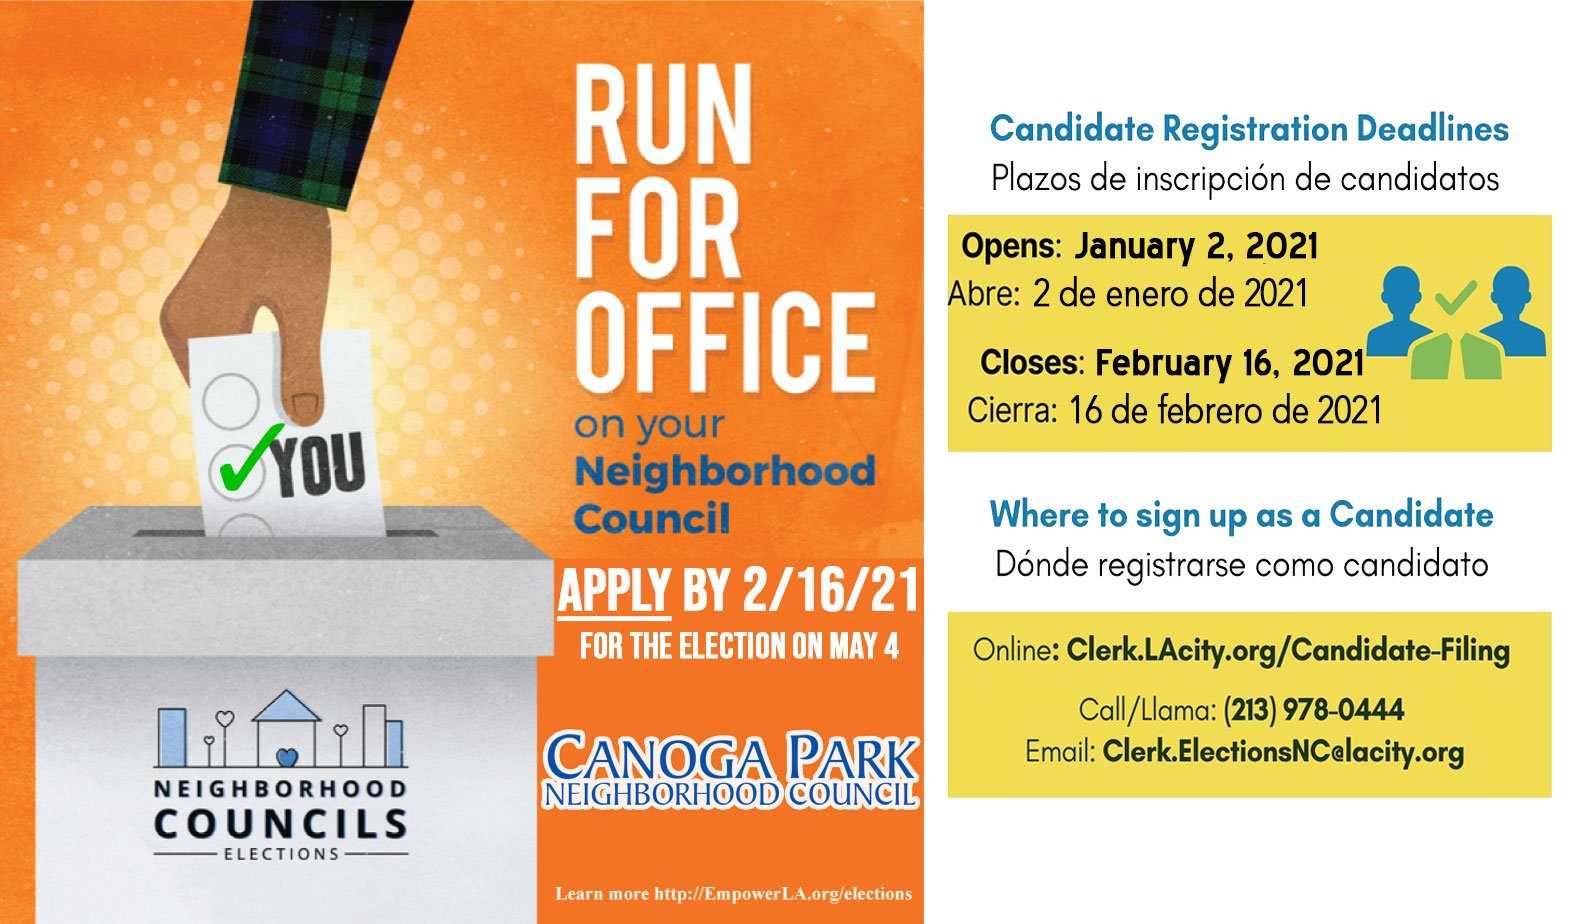 Now is your chance to make a difference in your Canoga Park community!